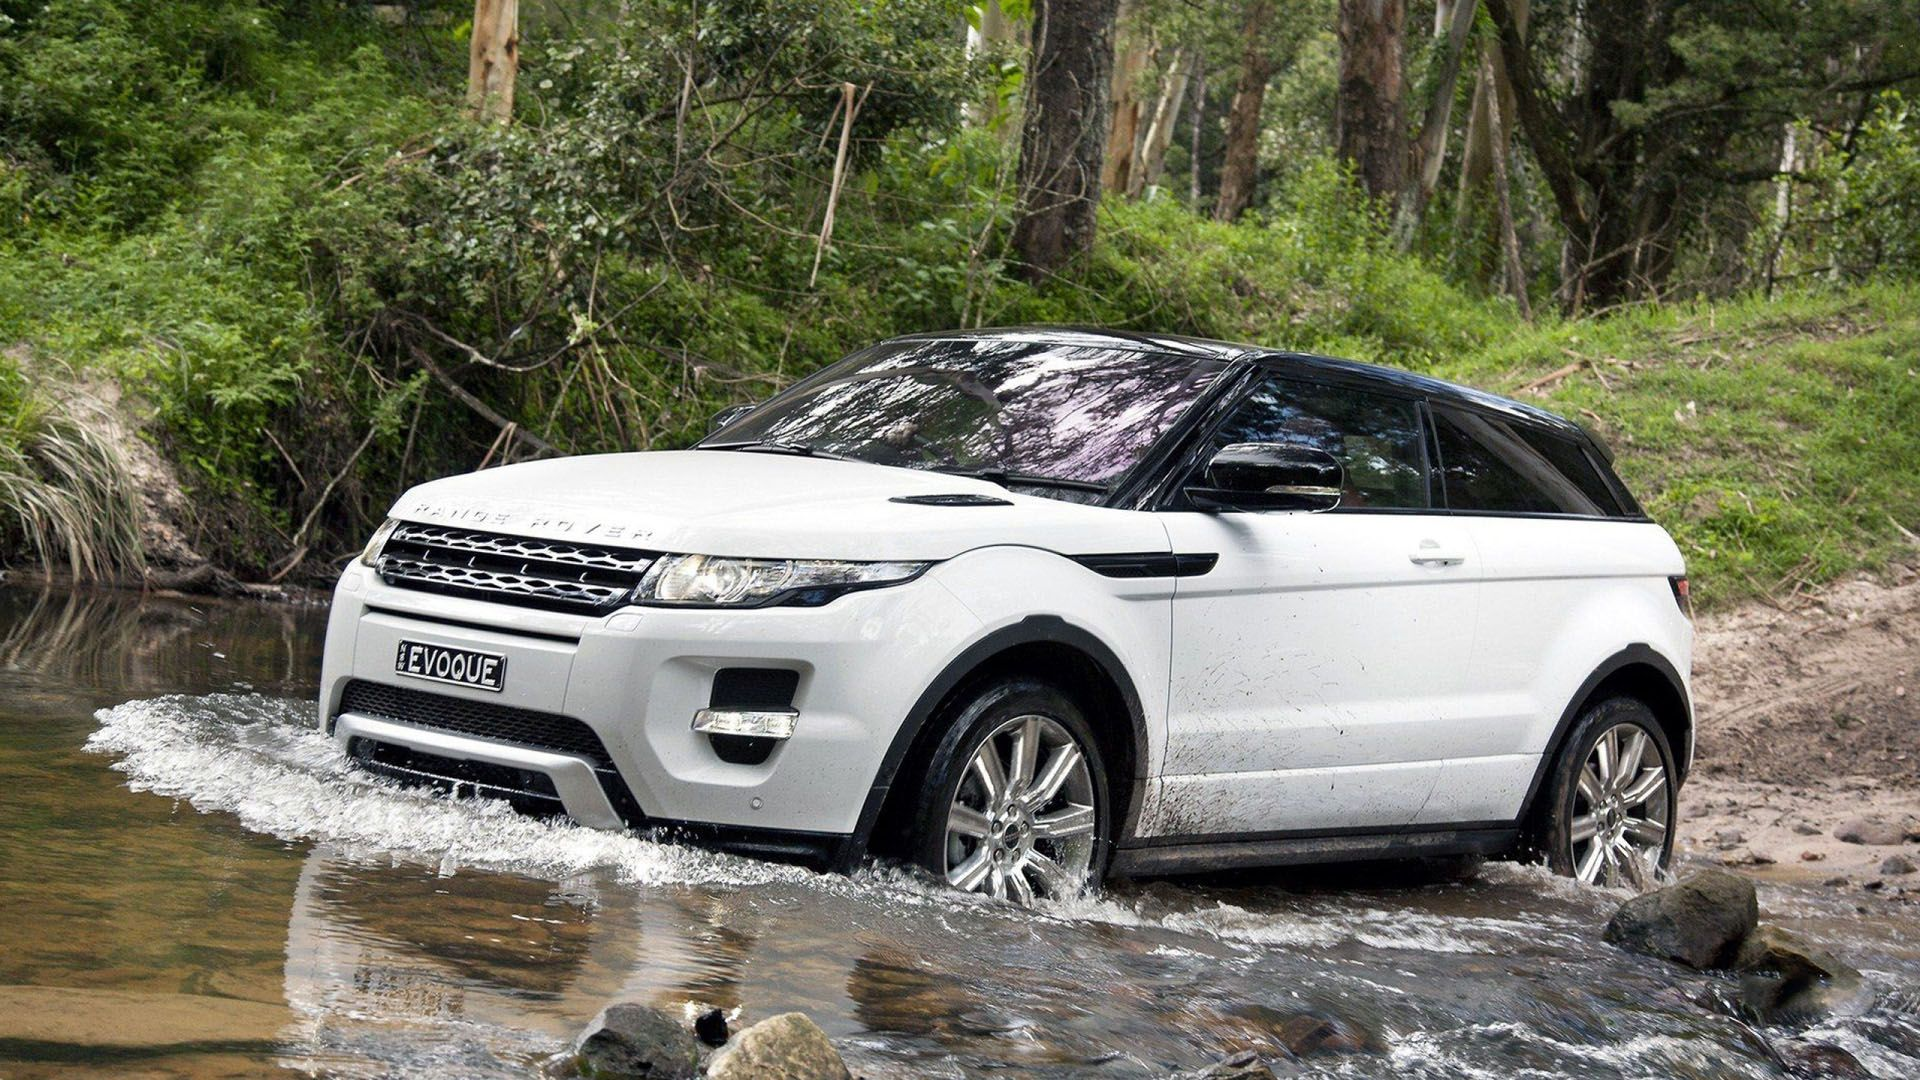 Range Rover Evoque Wallpapers Free Download Sweet Cars Range